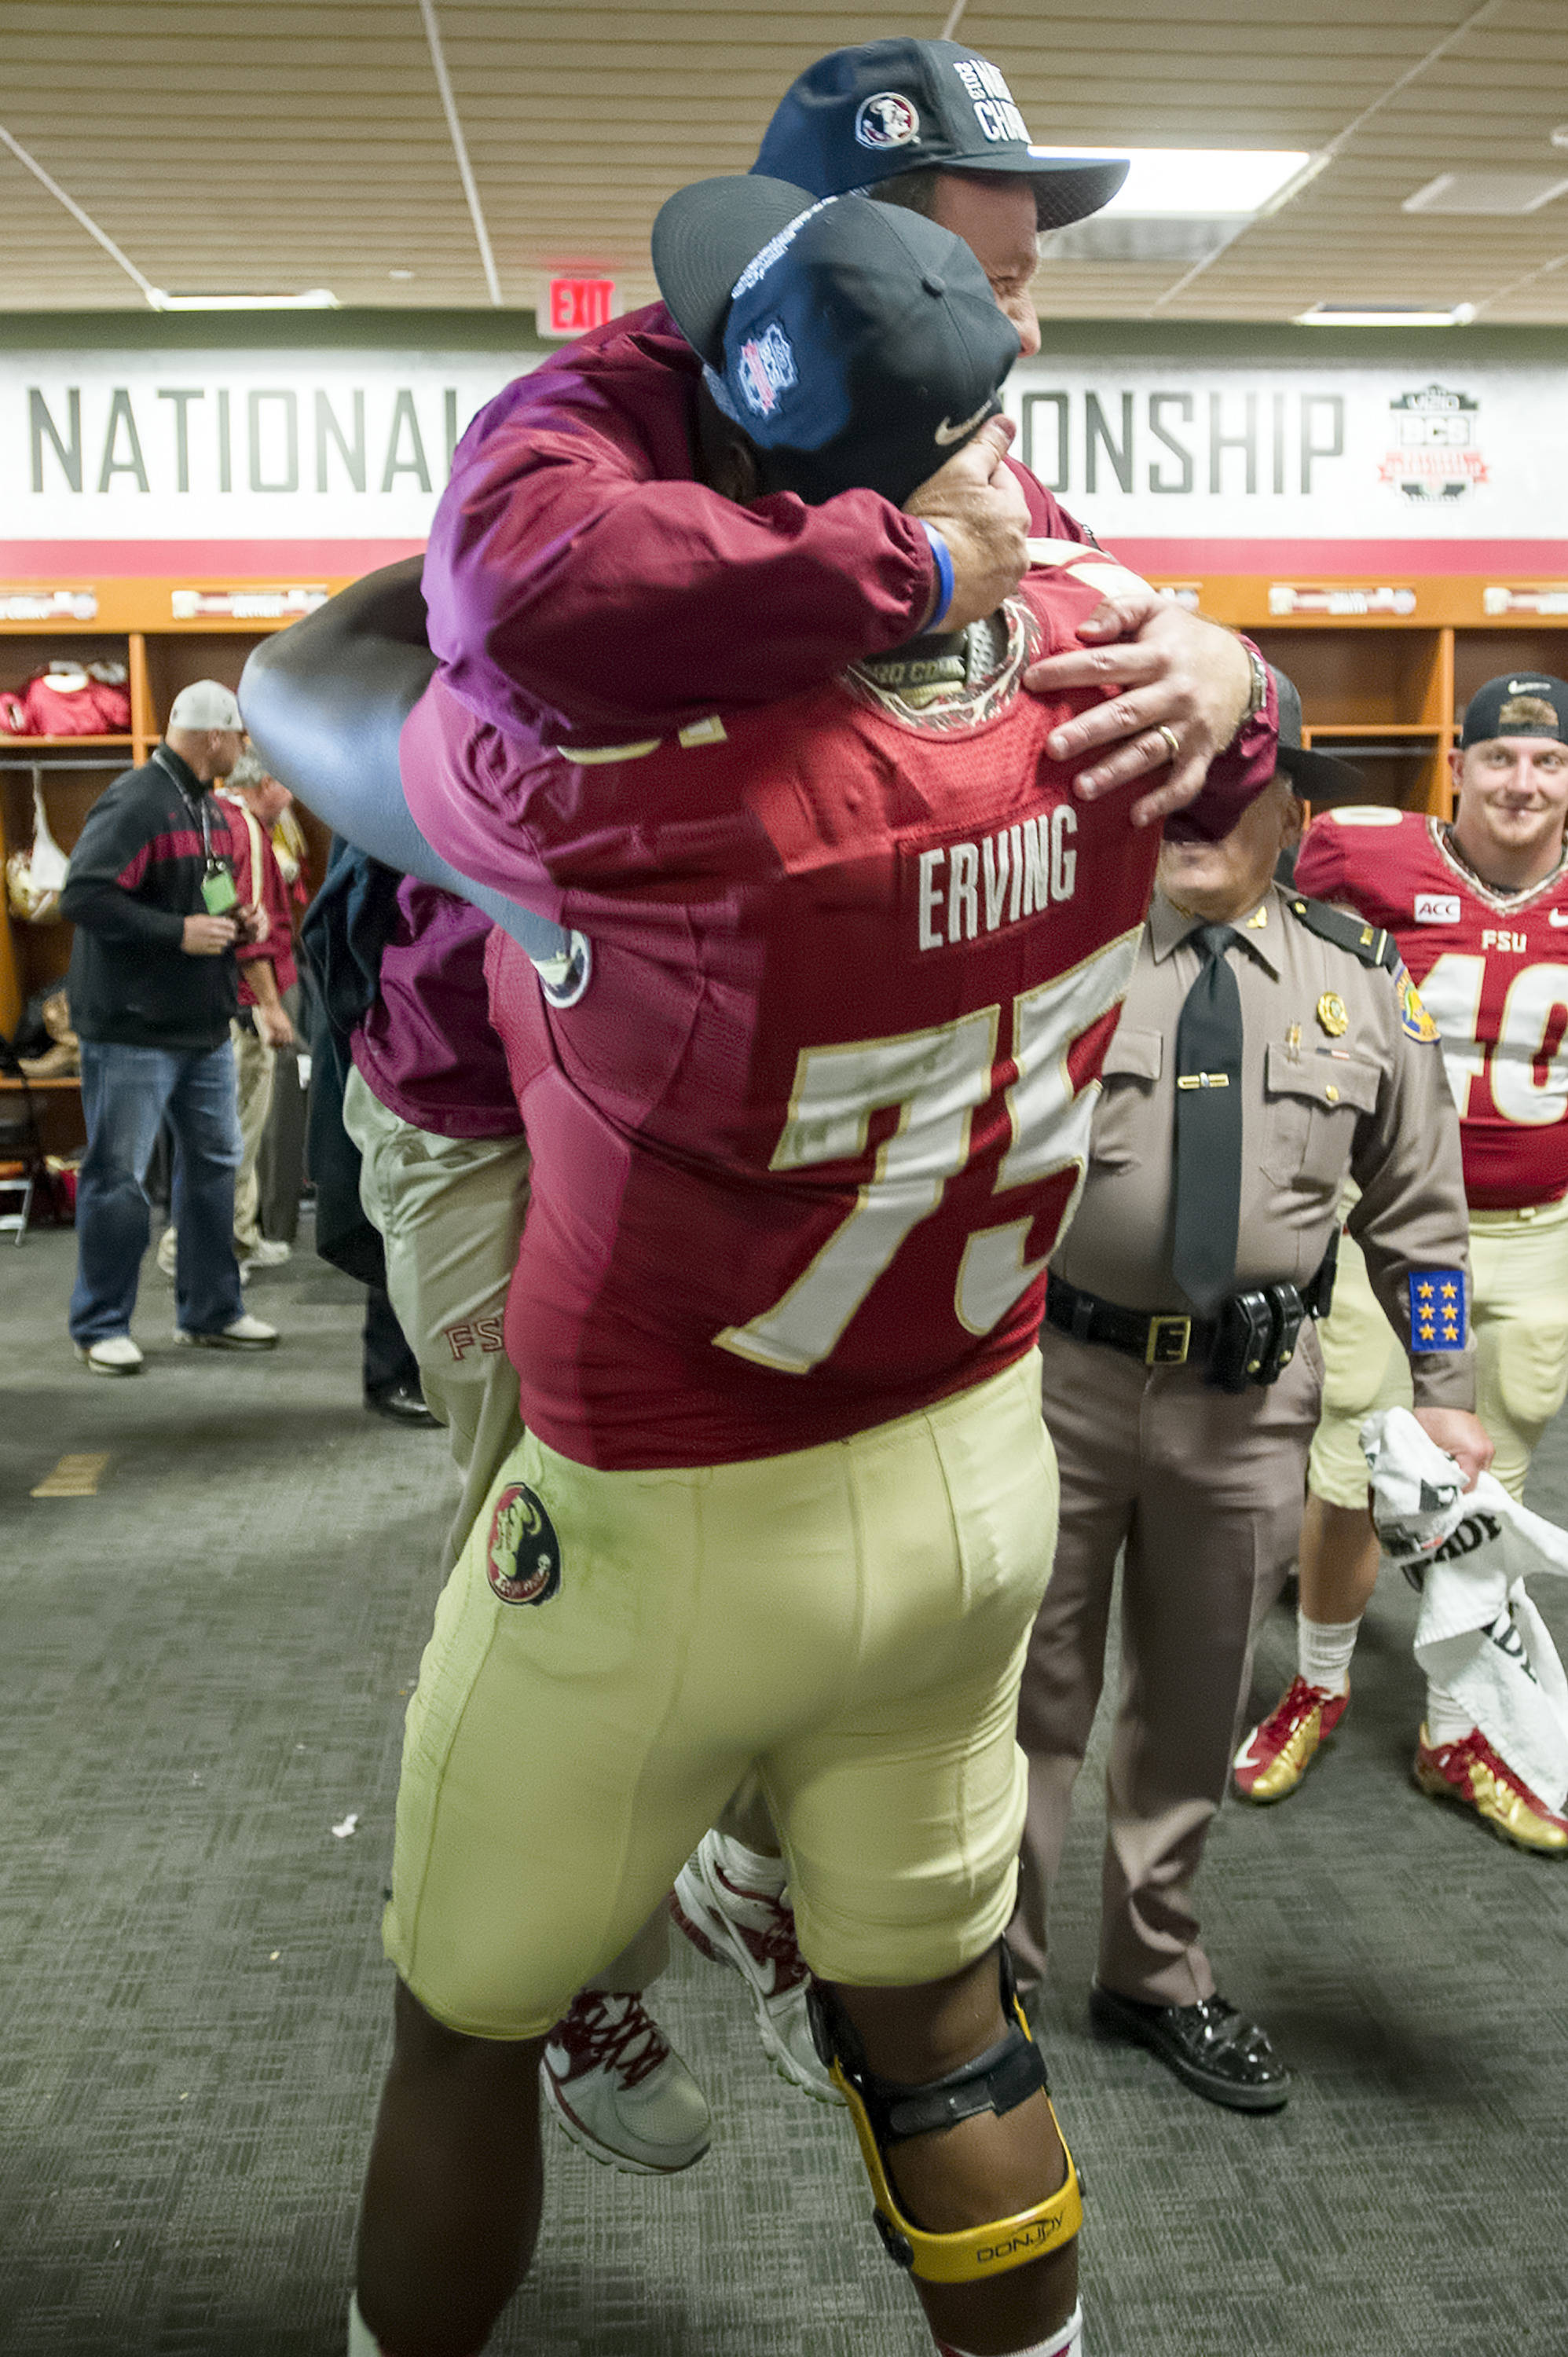 Cameron Erving (75) lifts Jimbo Fisher off the ground in the FSU locker room after the game